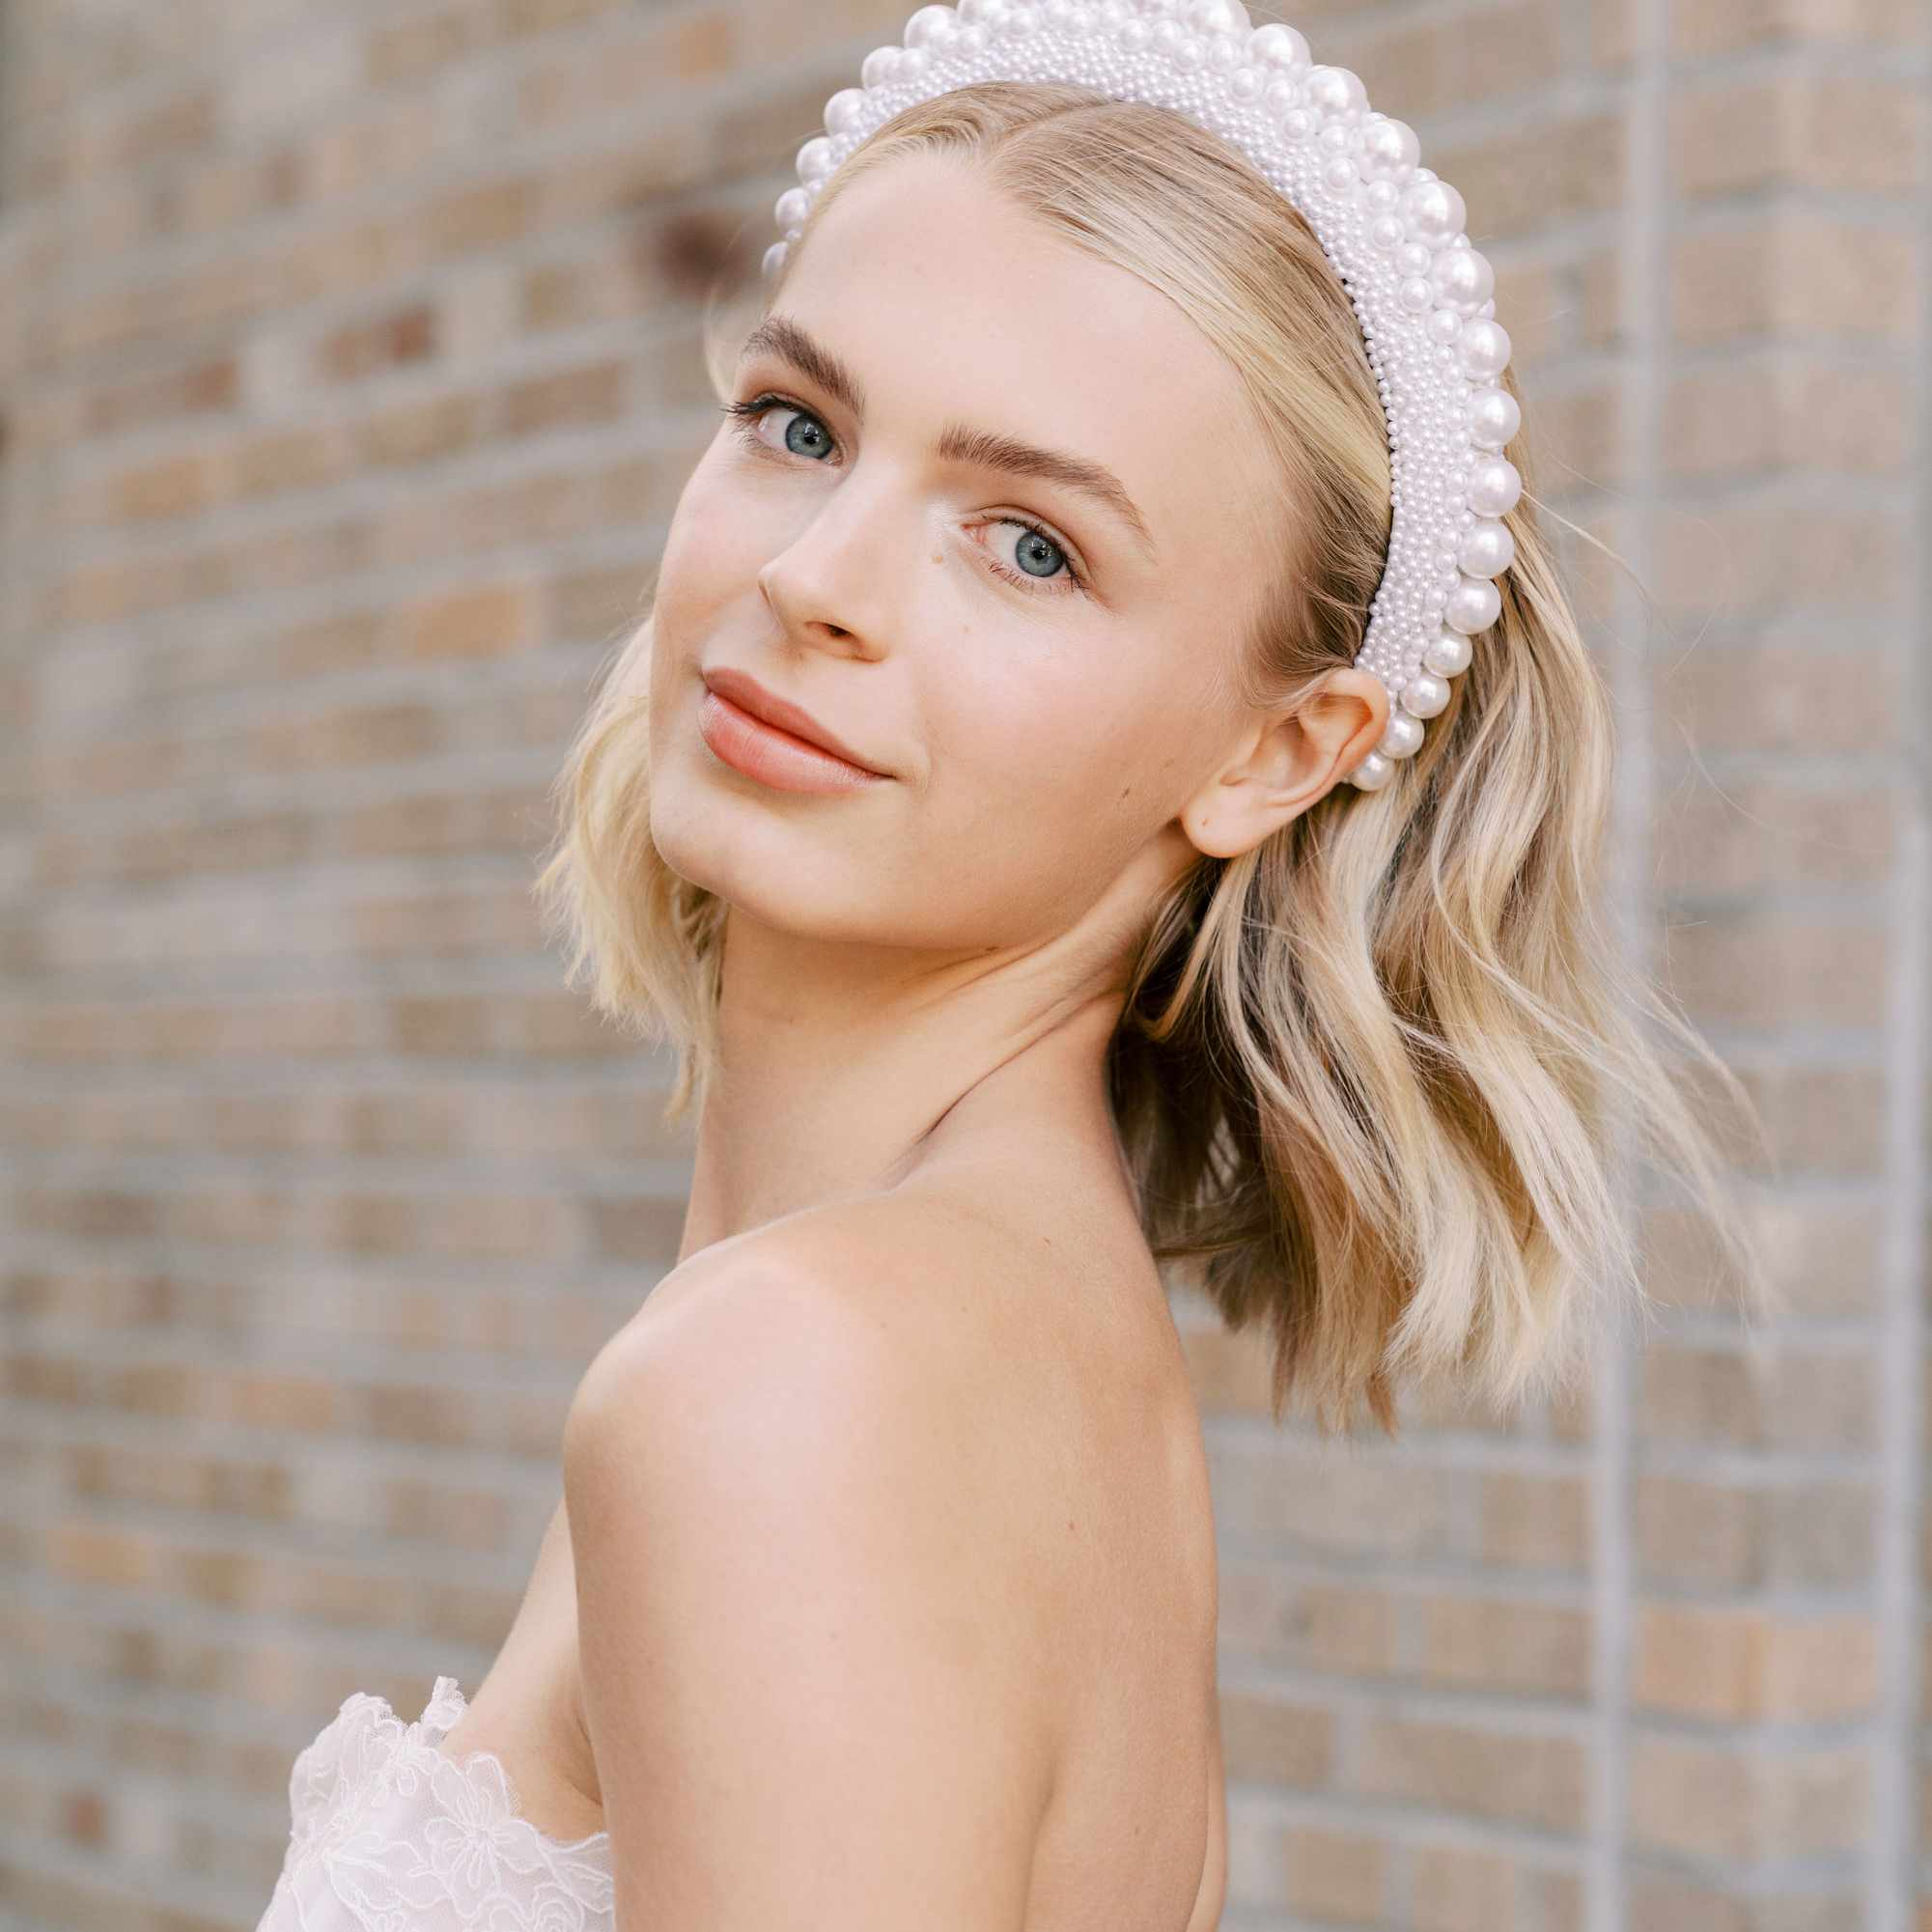 Wedding Hairstyle Trends 2020: 7 Wedding Hairstyle And Makeup Trends 2020 Brides Need To Know